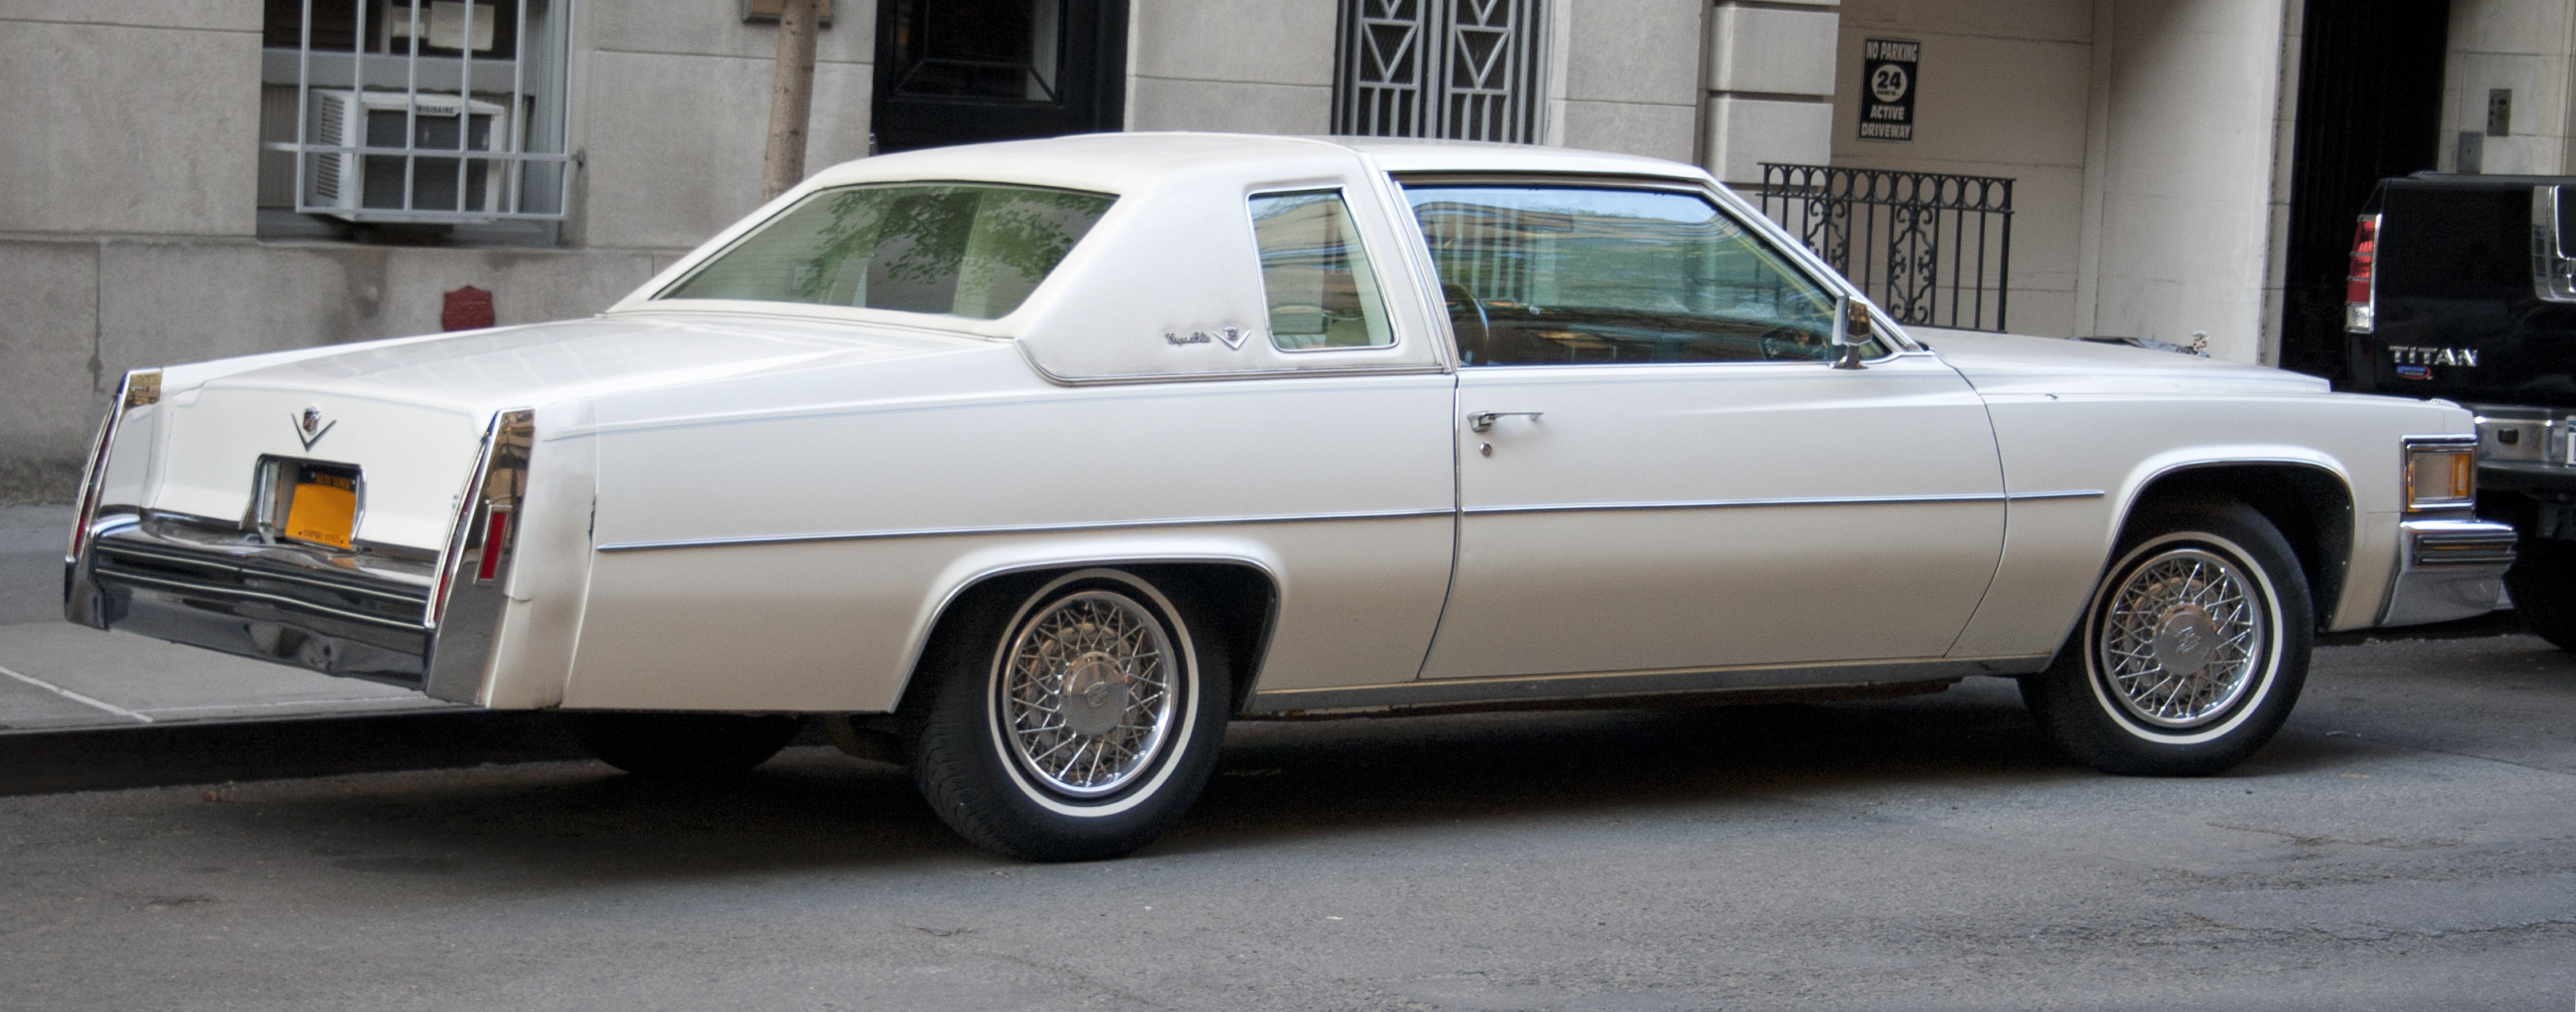 file 1979 cadillac coup wikimedia commons. Cars Review. Best American Auto & Cars Review